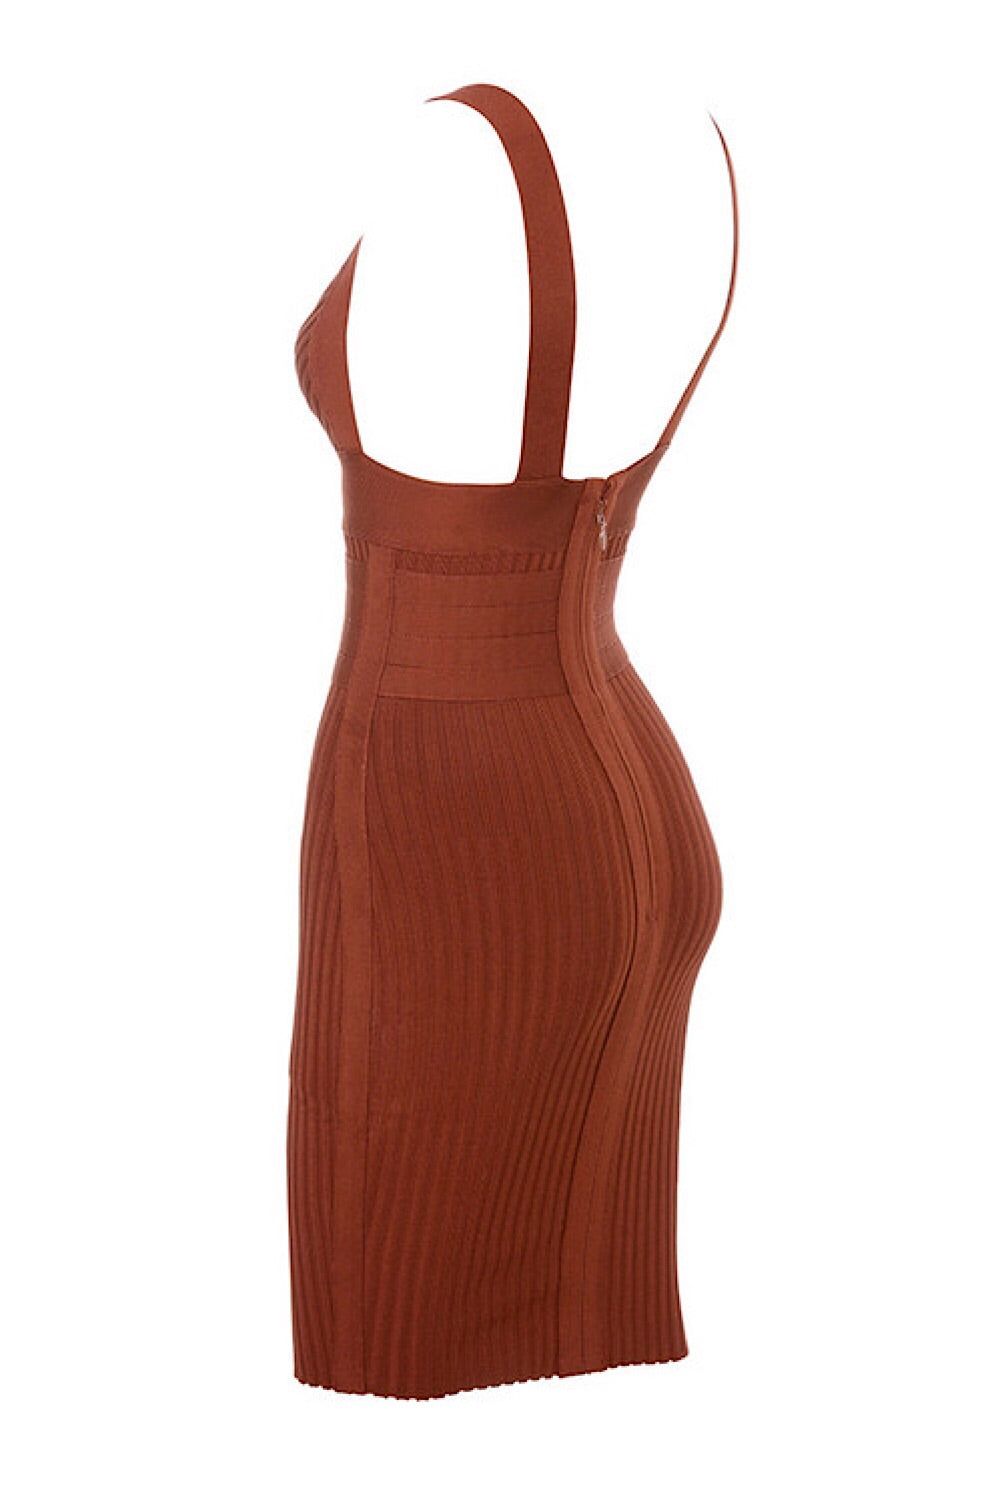 Charmaine Rust Rib Bandage Dress